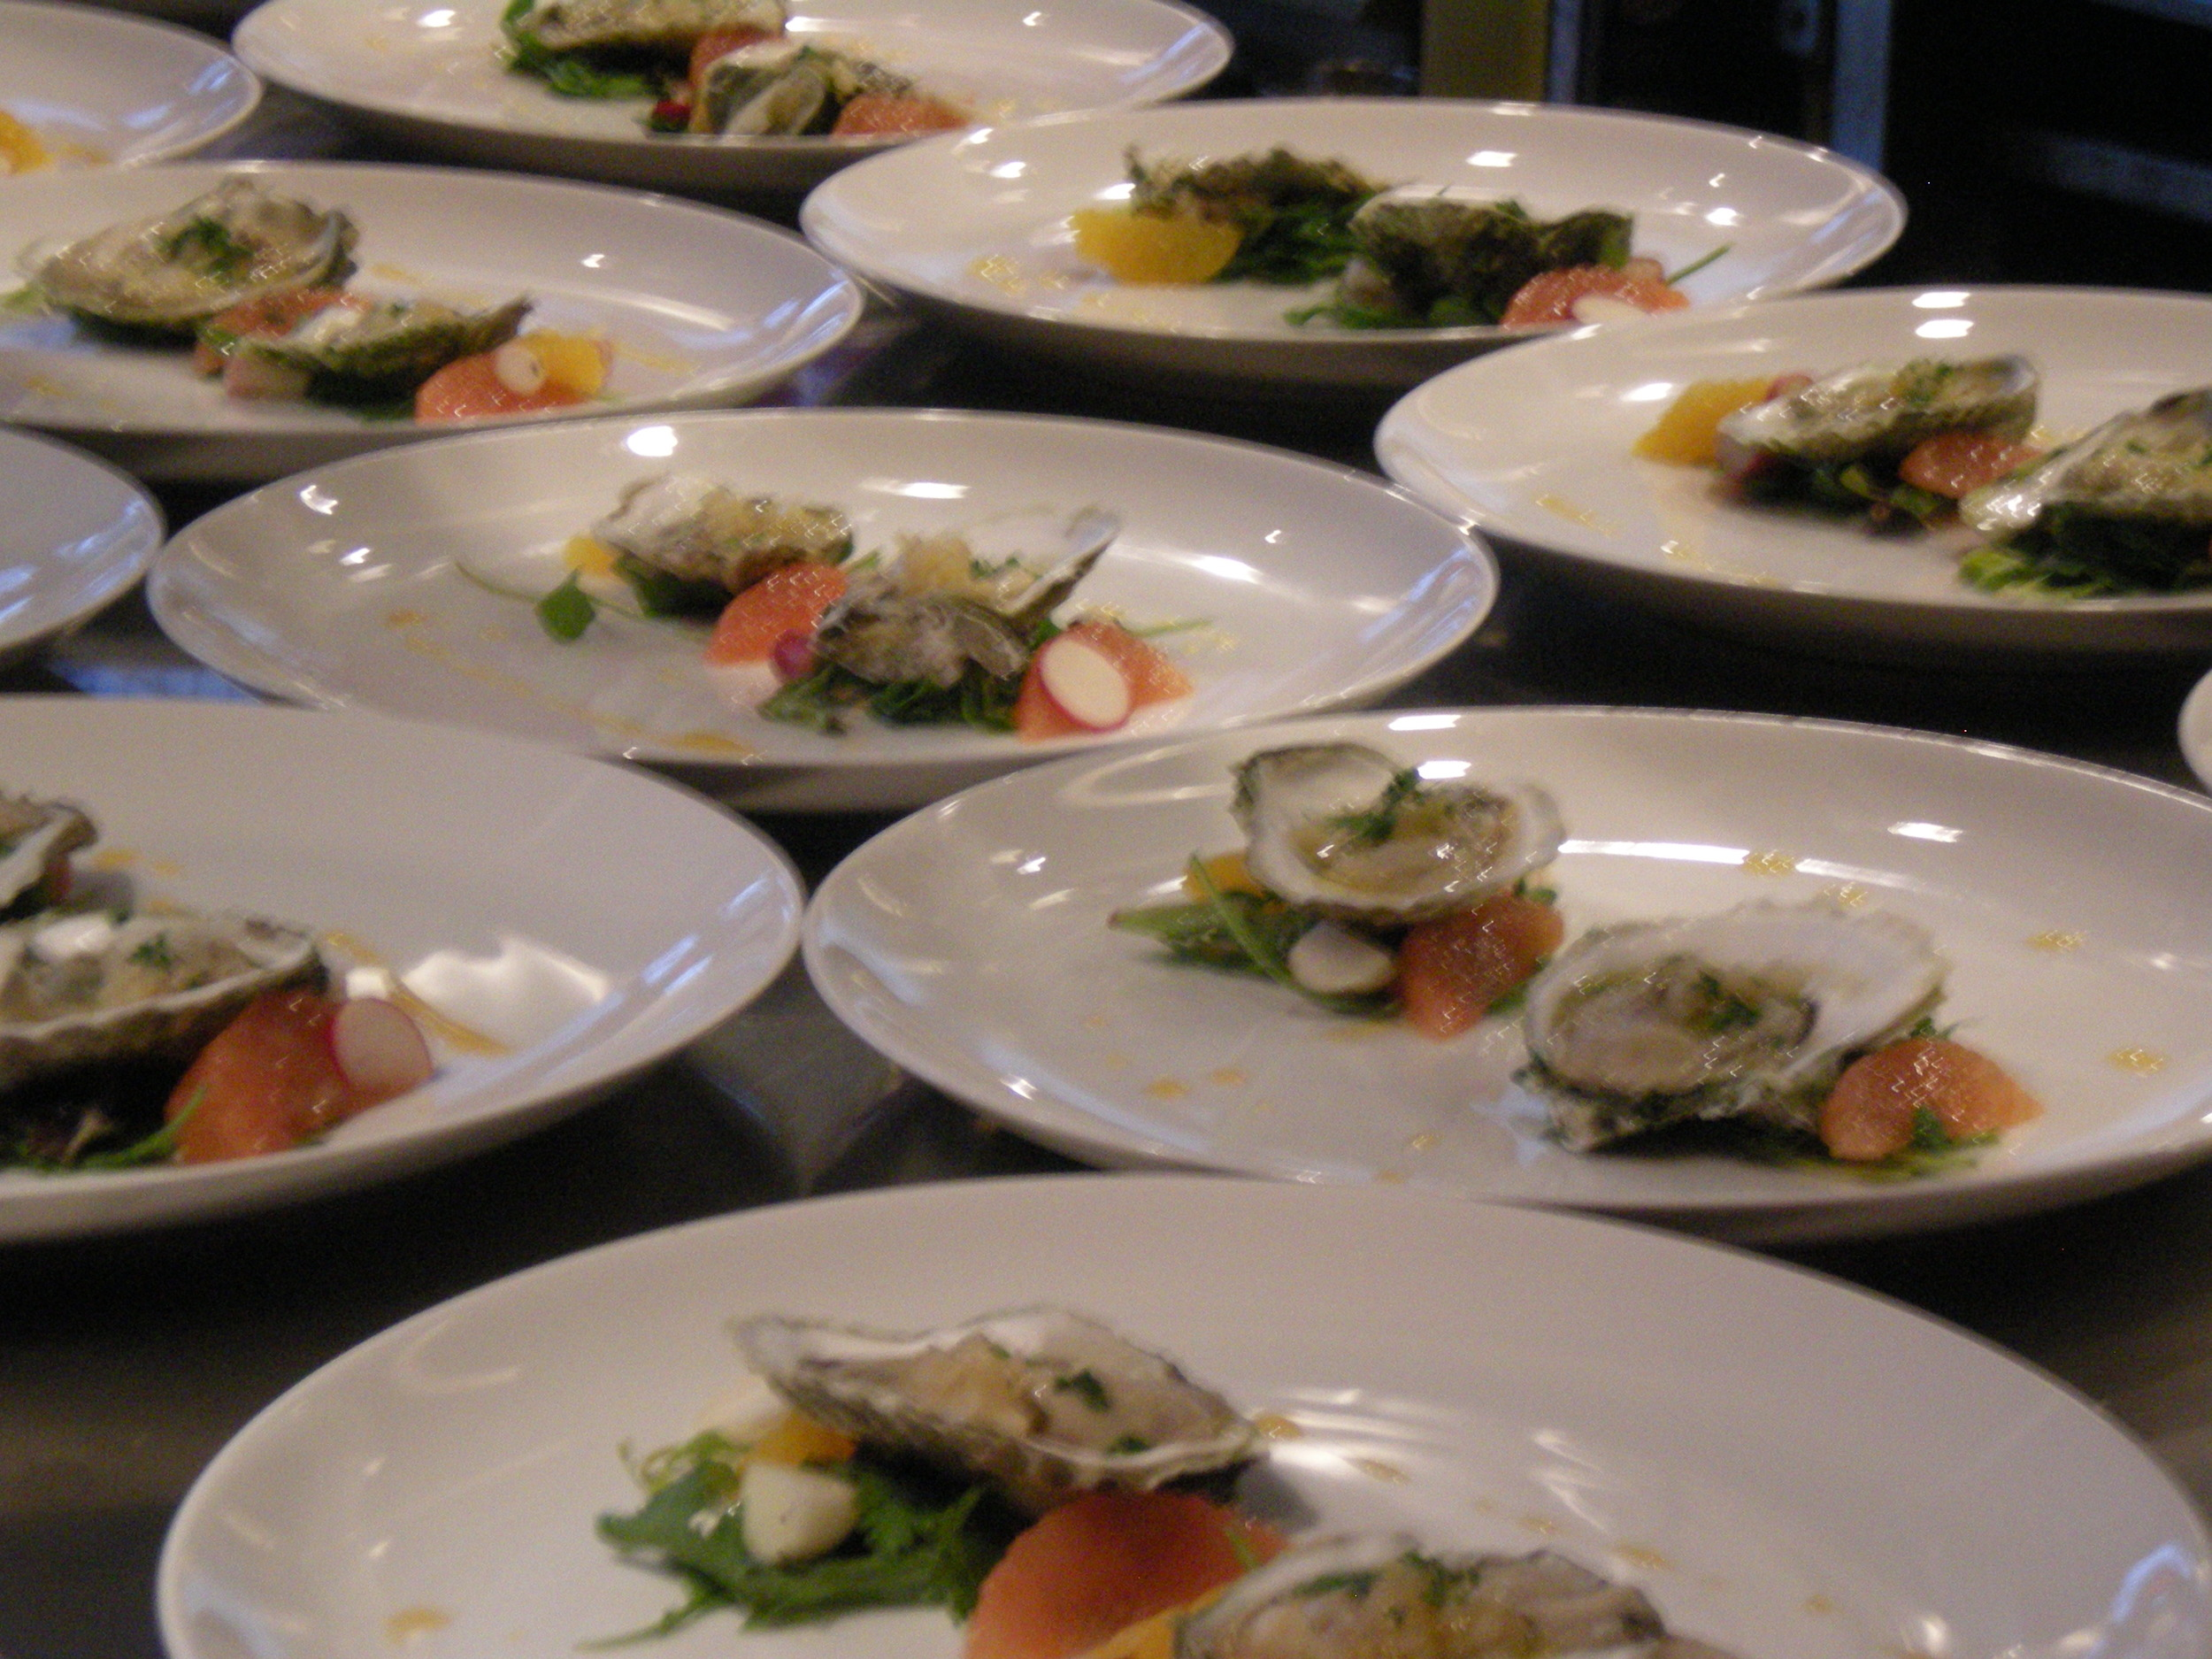 Wild Narragansett Bay oysters with early spring radishes, parsley, citrus fruits + lettuce